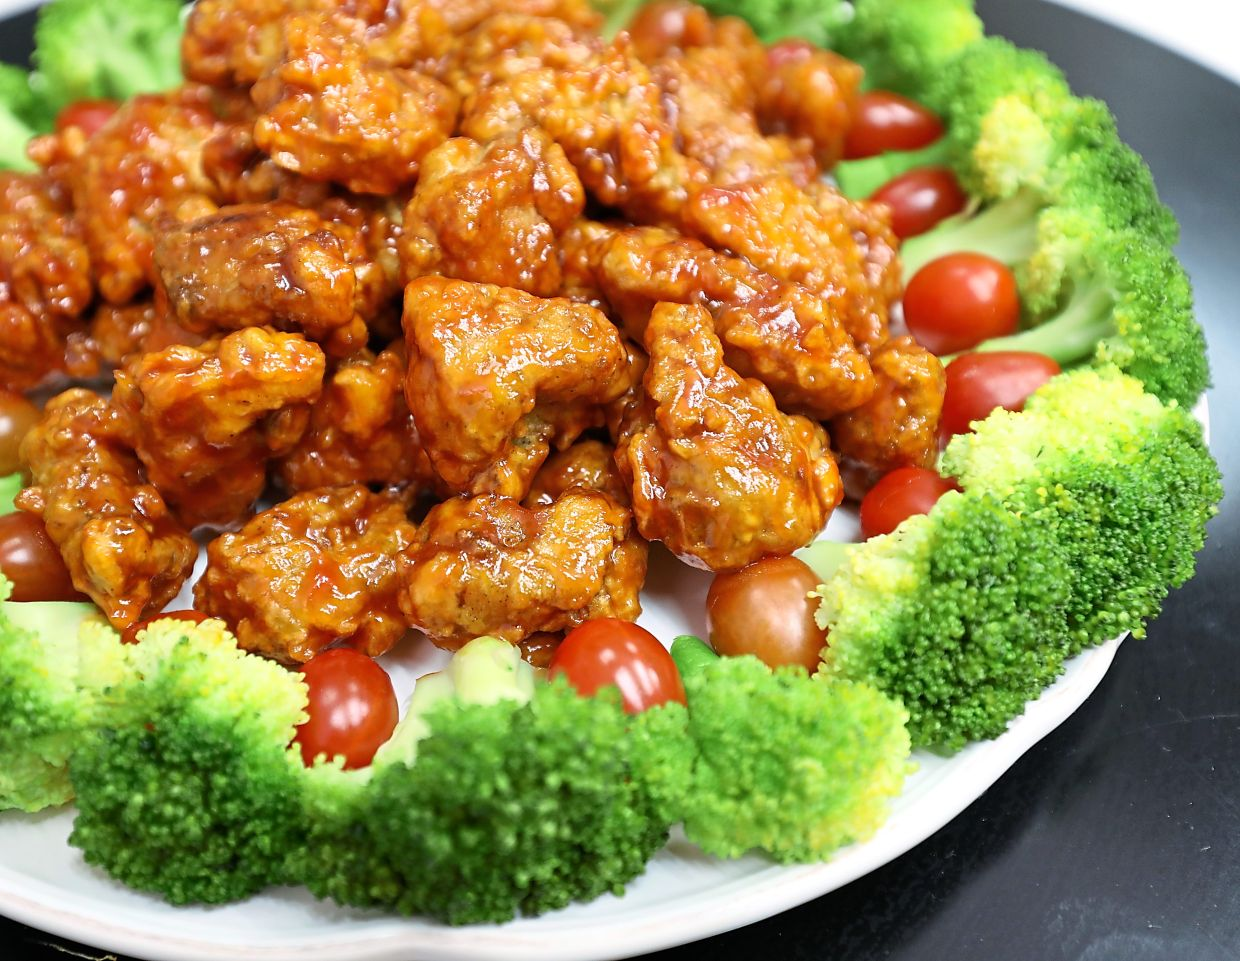 Spicy sweet chicken poppers.